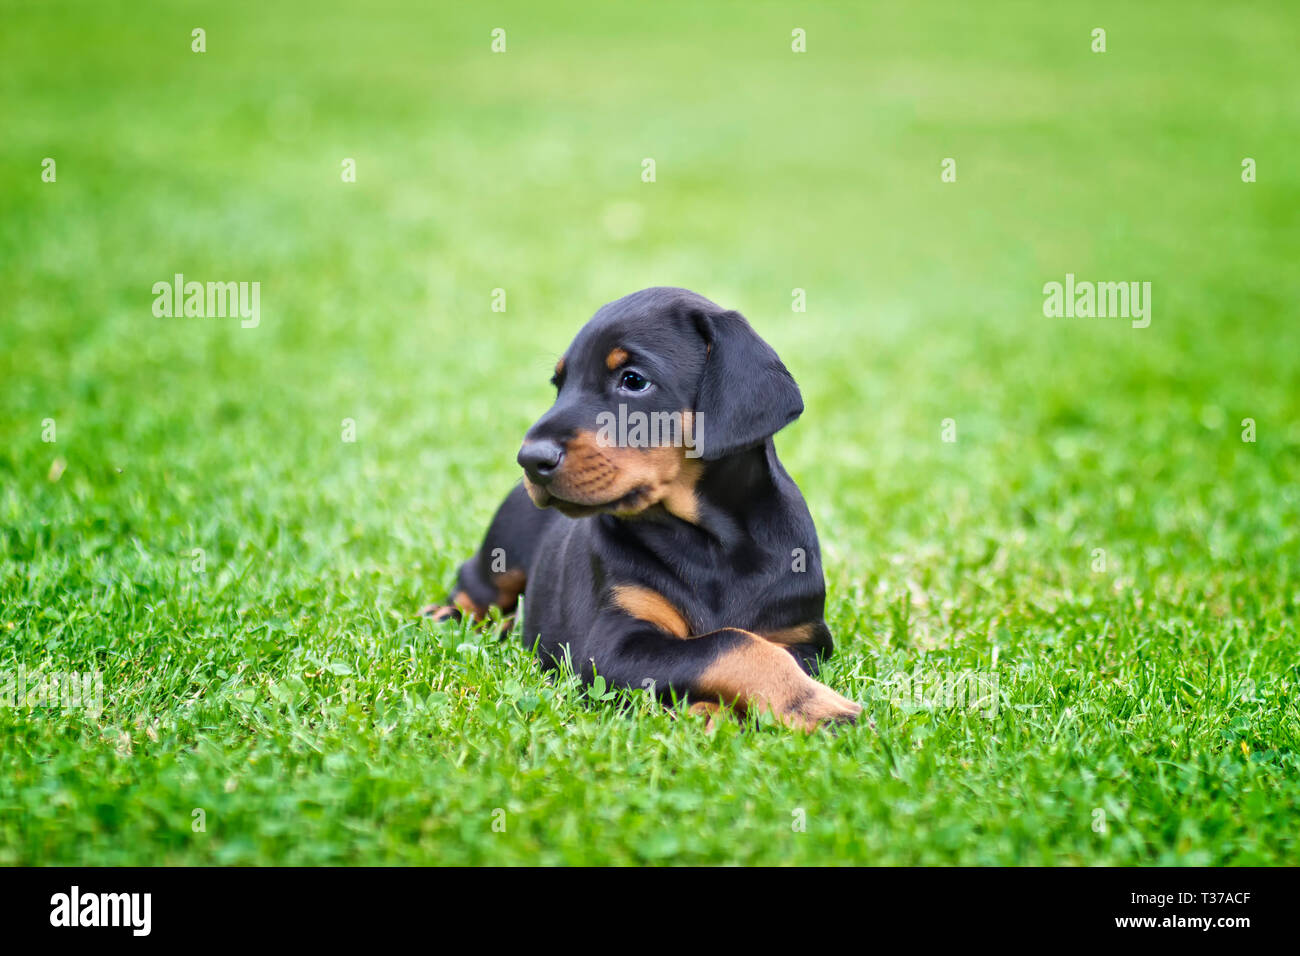 Doberman puppy in grass. Puppy lies on the green grass. He is black and brown and so cute. - Stock Image